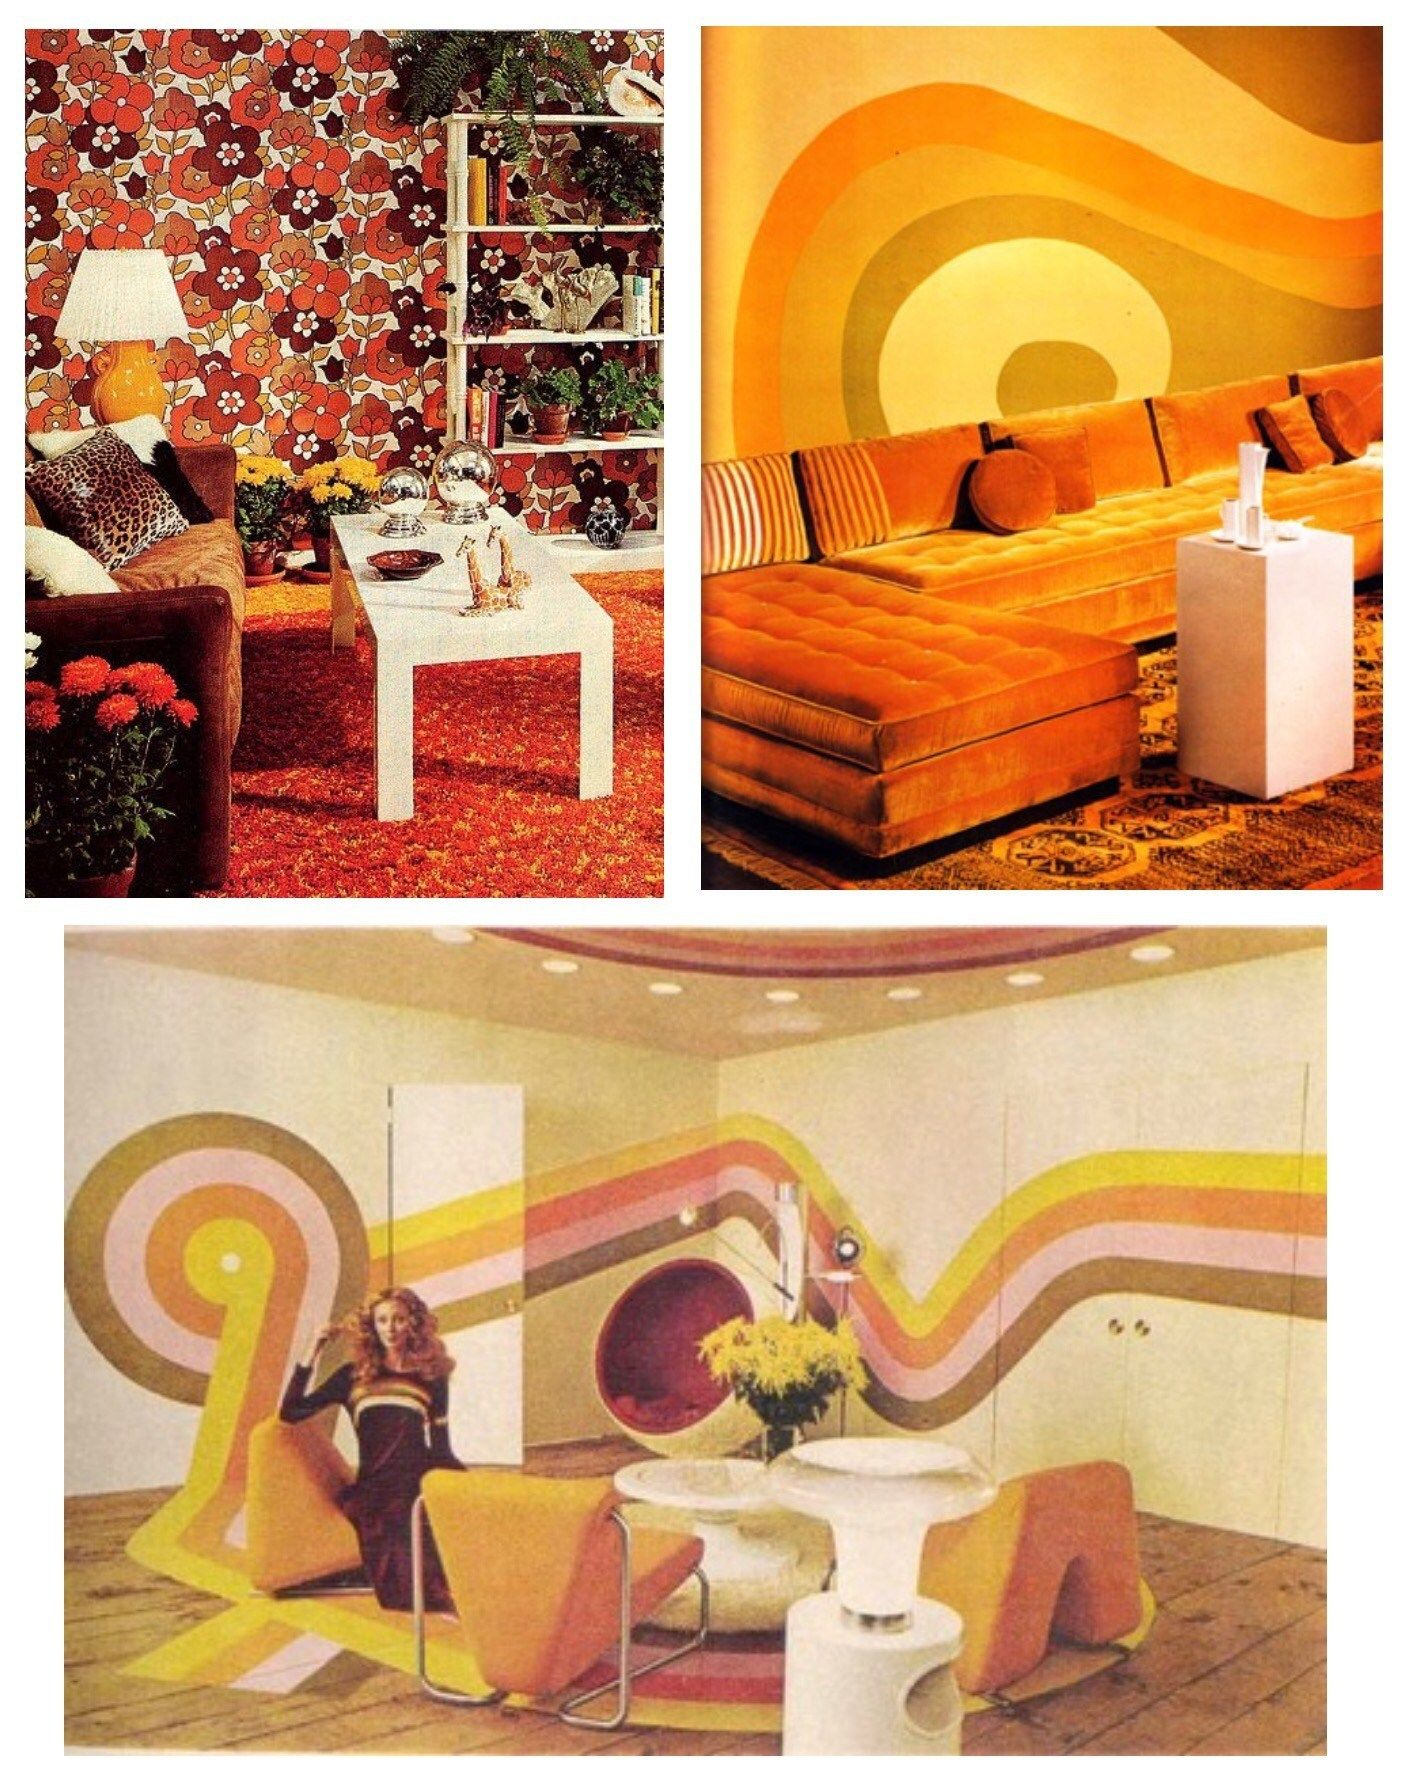 All The 1970s Home Design Inspiration You Will Ever Need ...